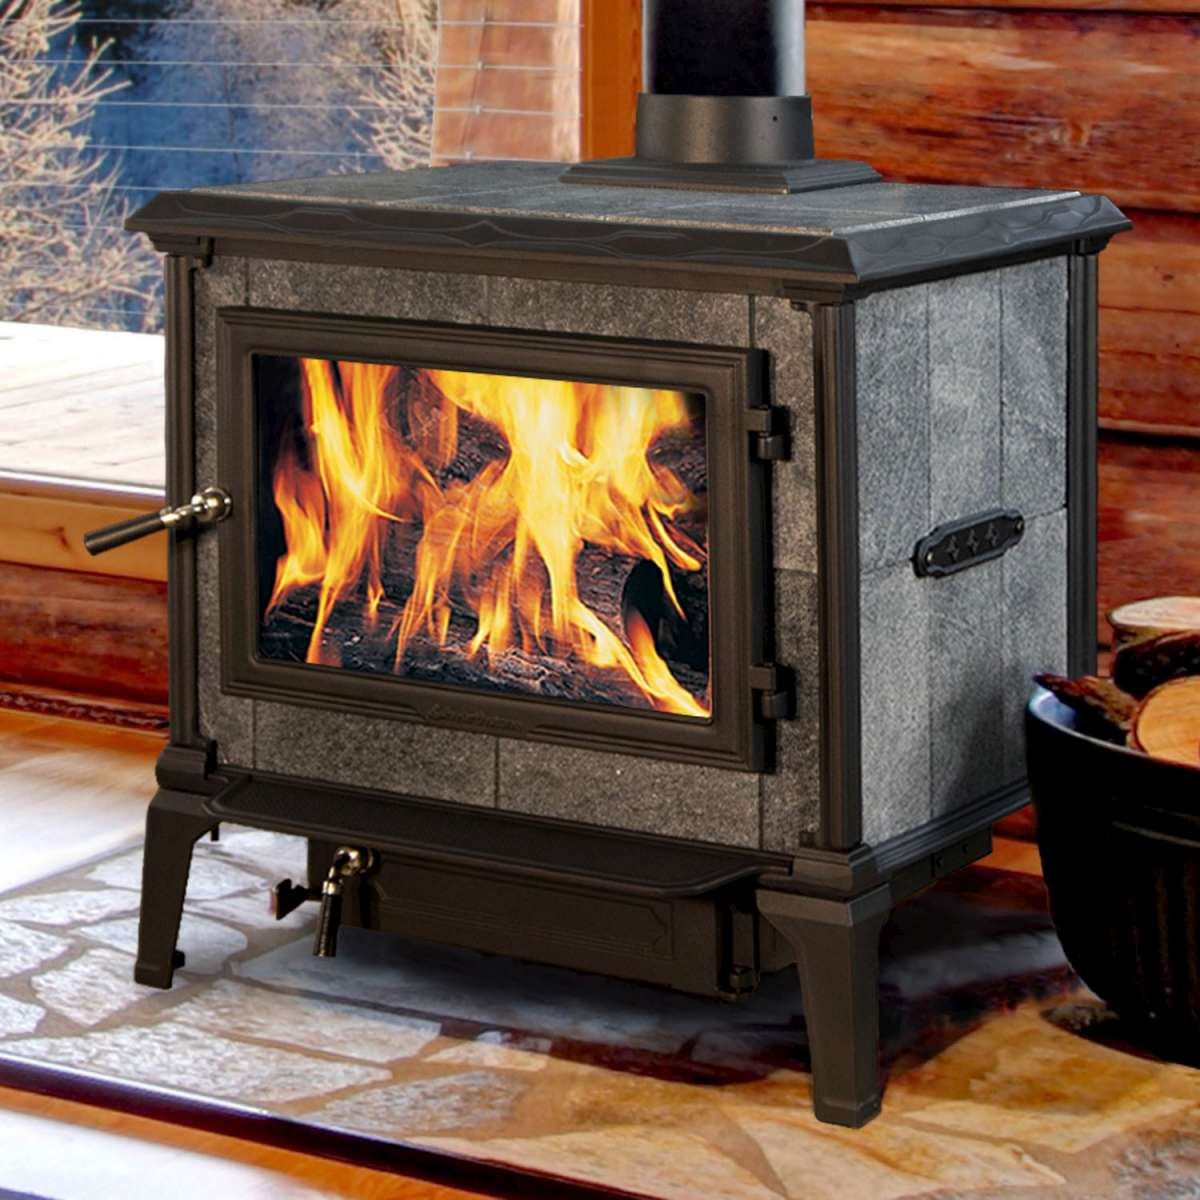 Four Reasons Why Soapstone Stoves Are Worth The Investment